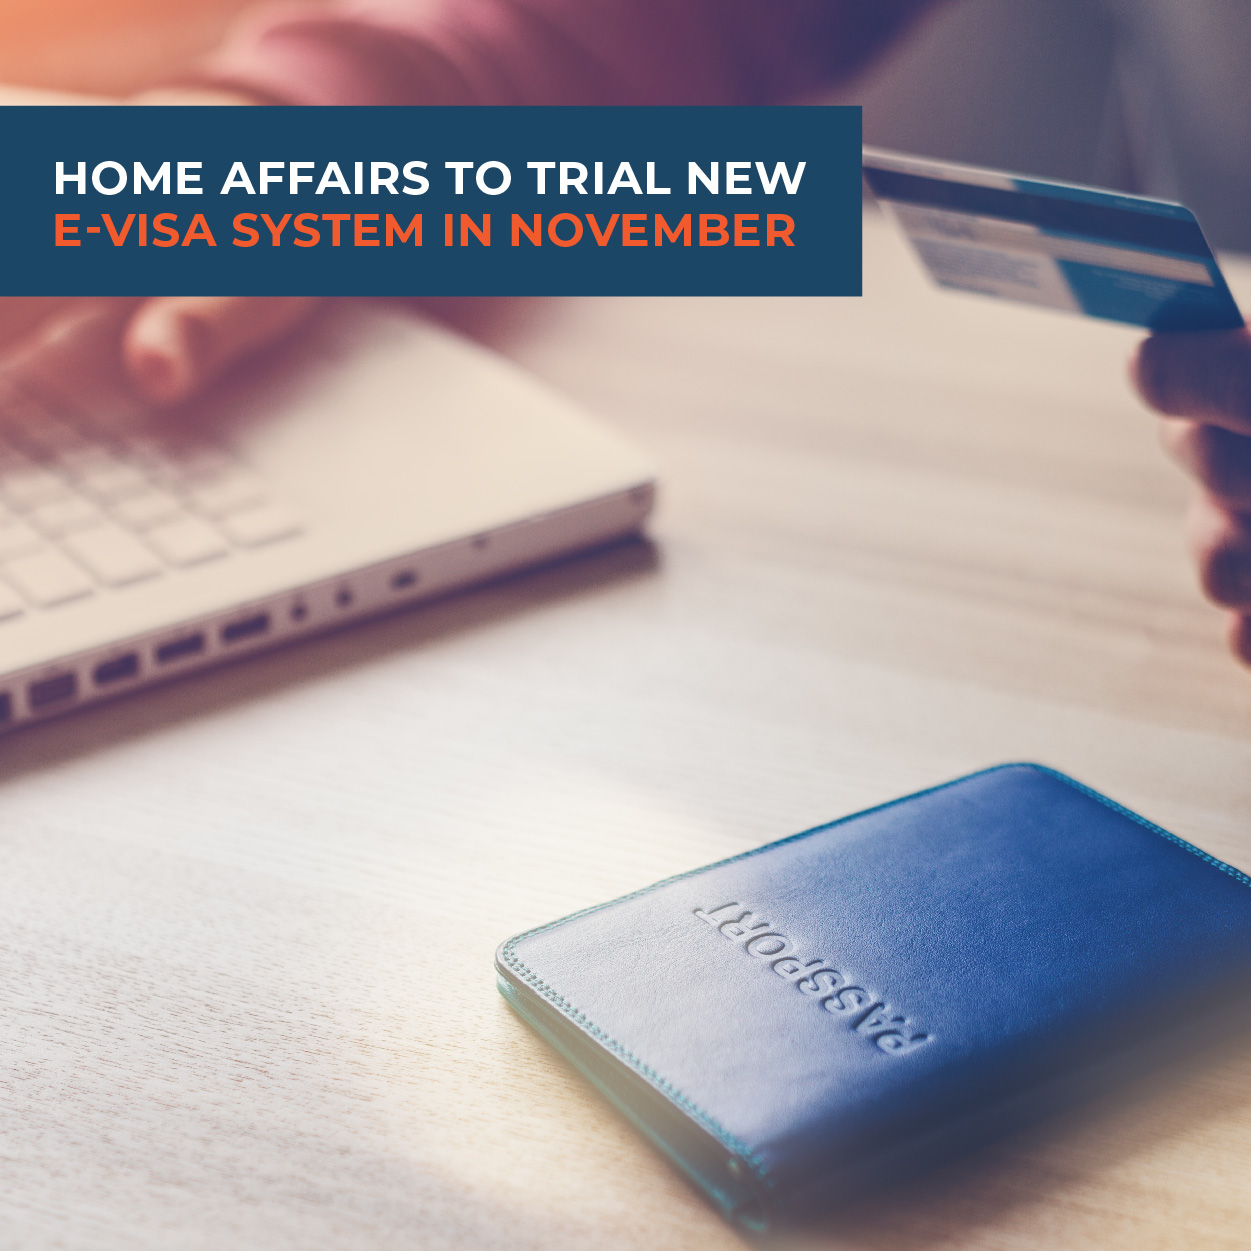 Home Affairs To Trial New E-Visa System In November